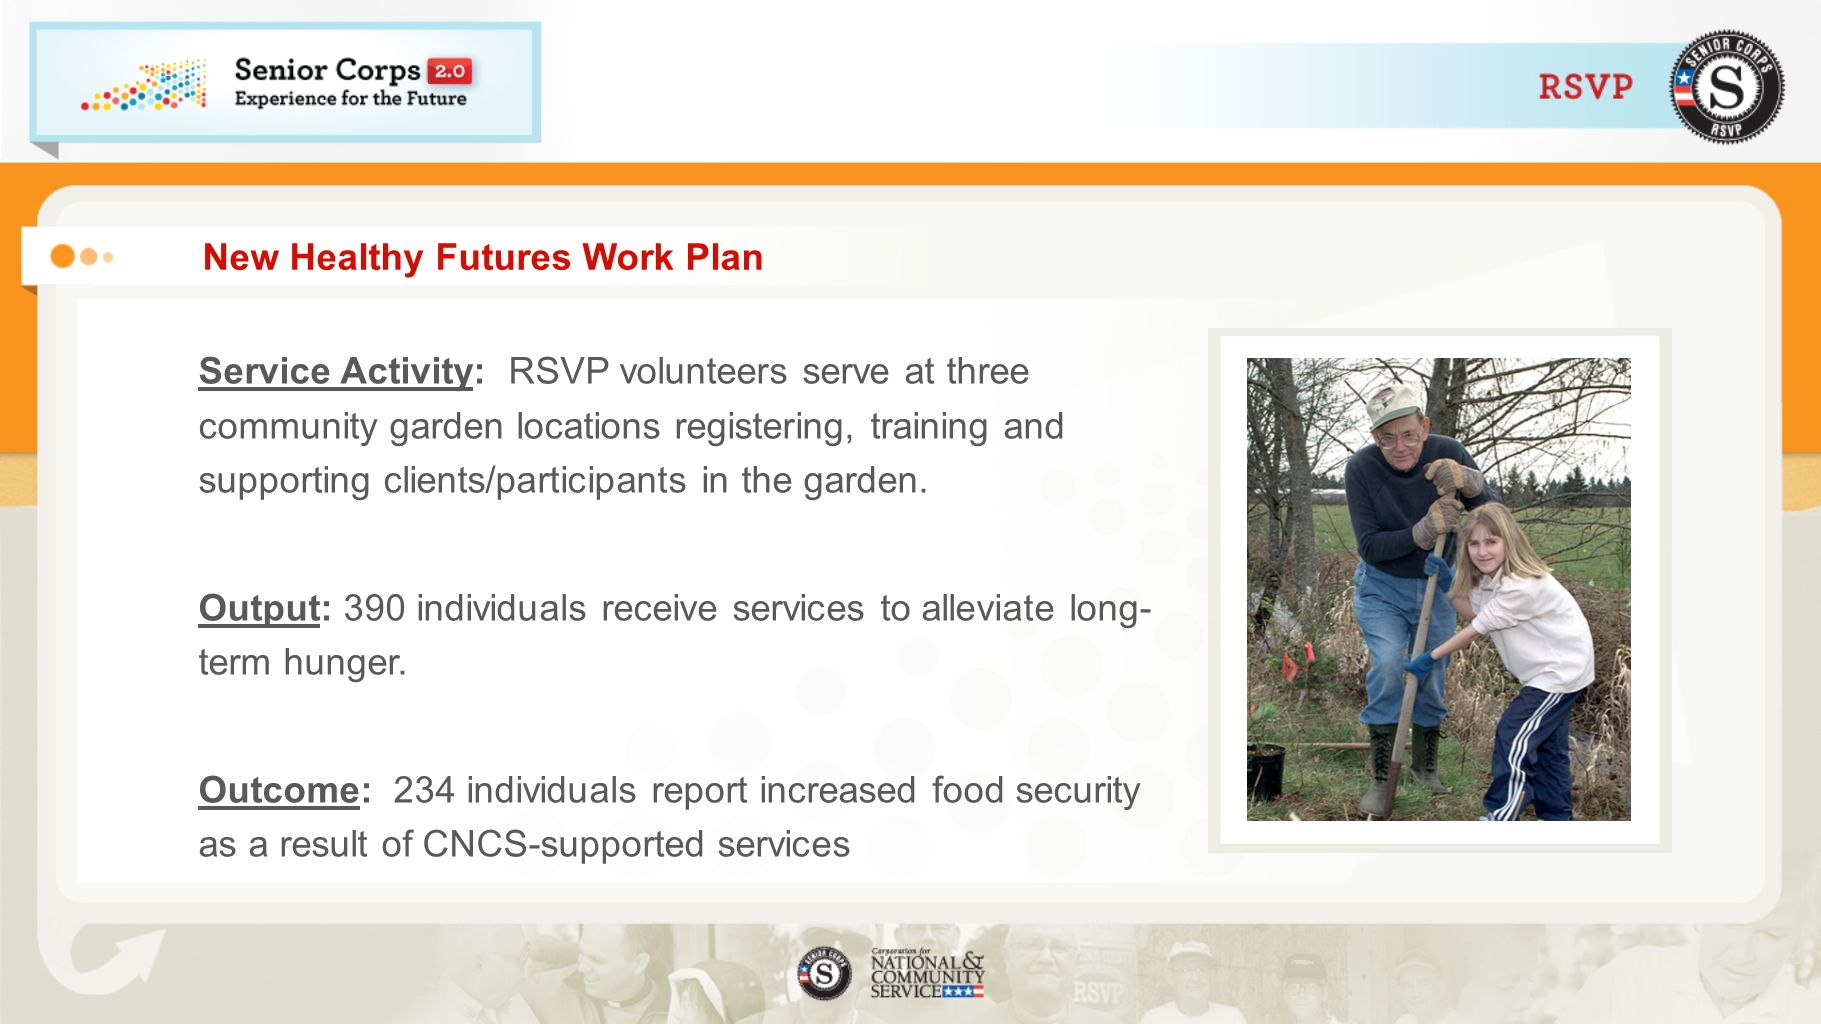 New Healthy Futures Work Plan